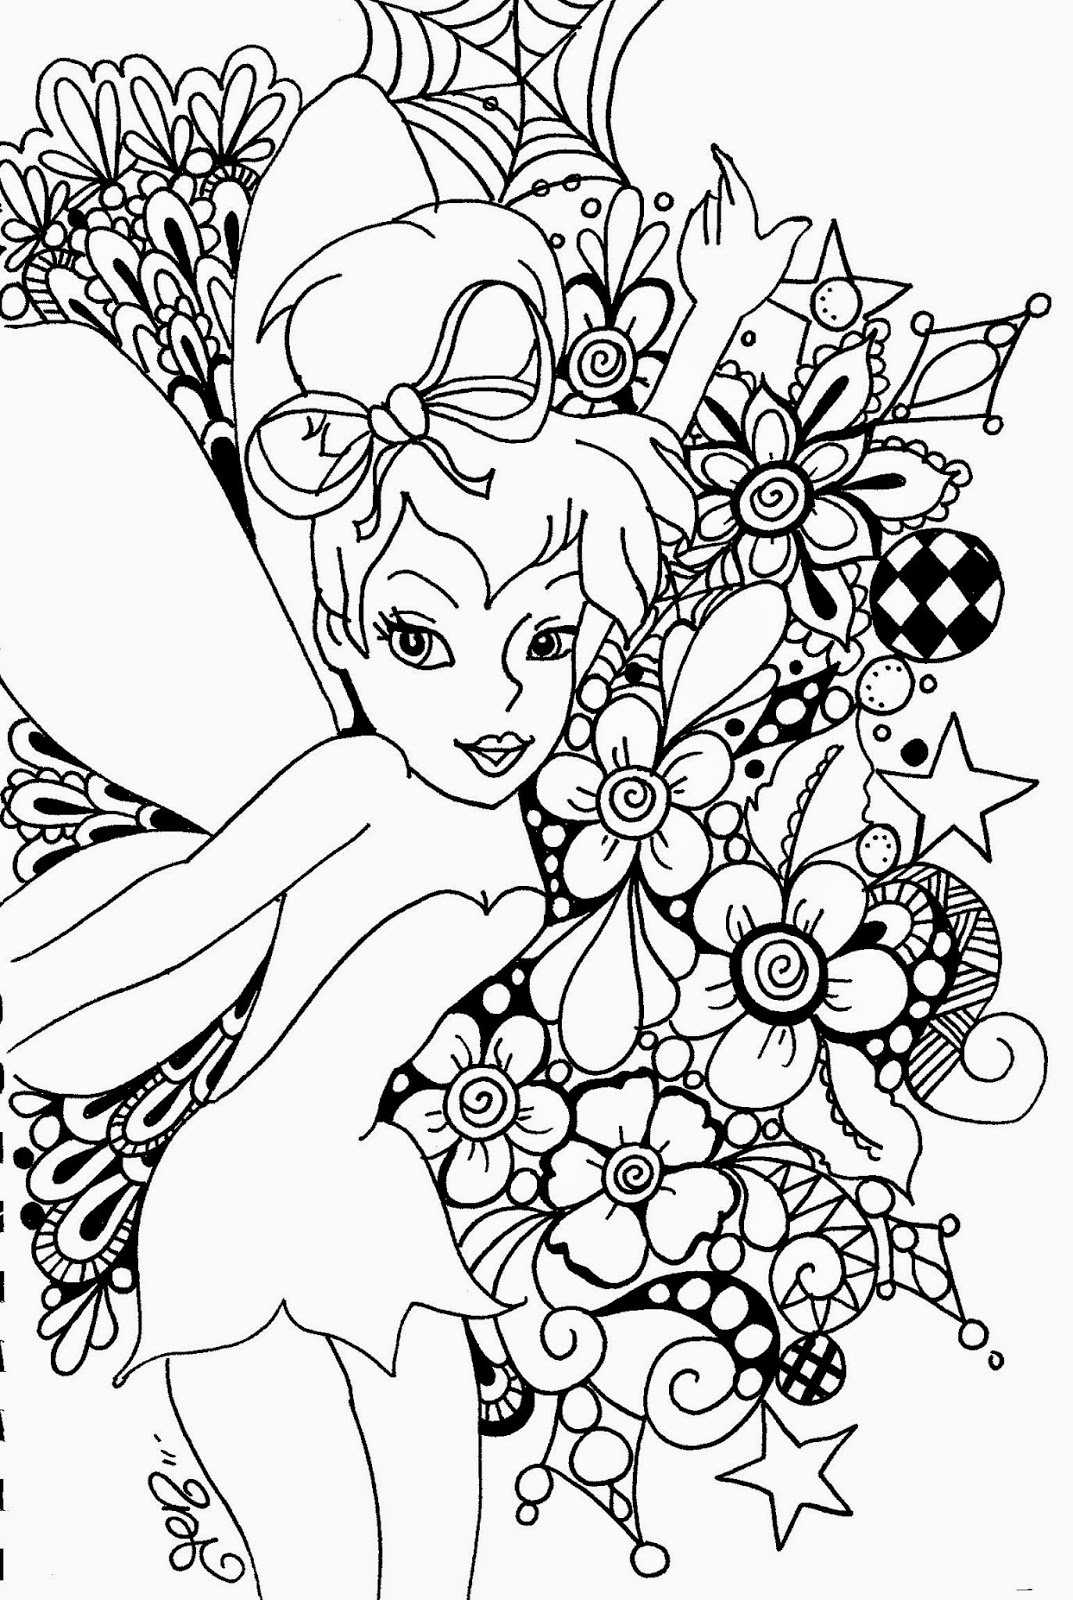 tinkerbell pictures to color tinkerbell coloring pages color tinkerbell pictures to